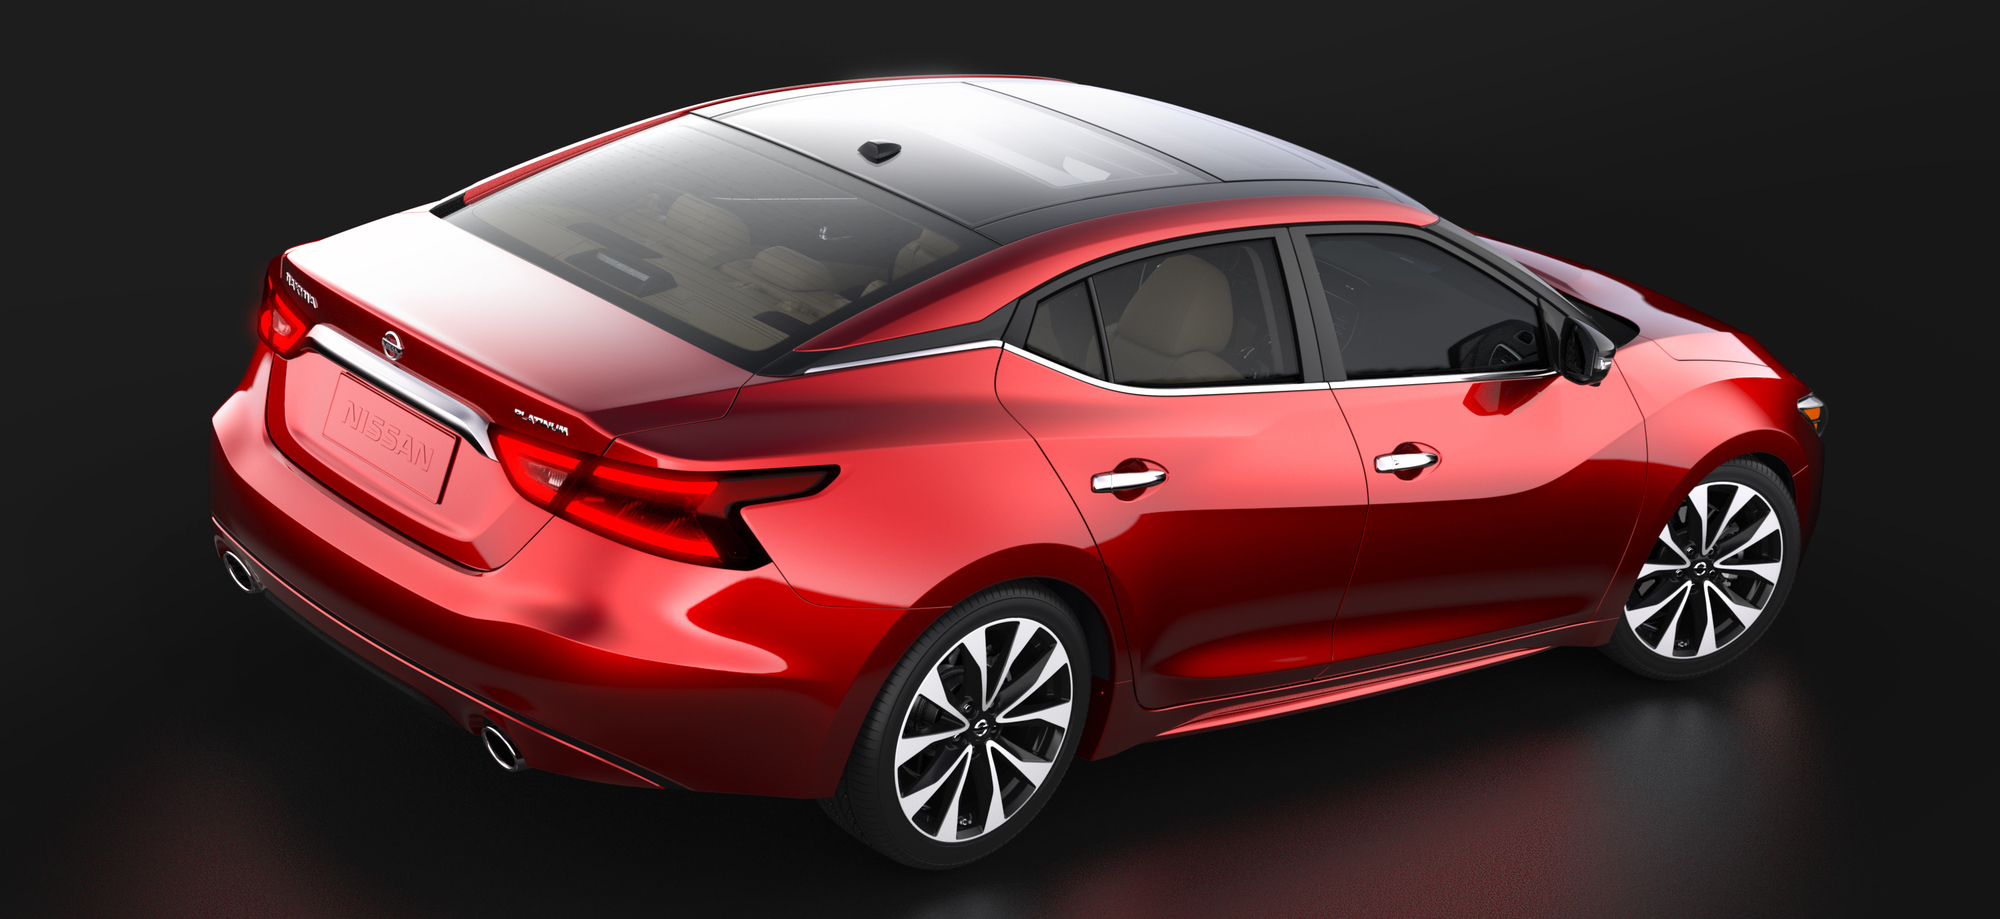 2016 nissan maxima fully revealed news. Black Bedroom Furniture Sets. Home Design Ideas